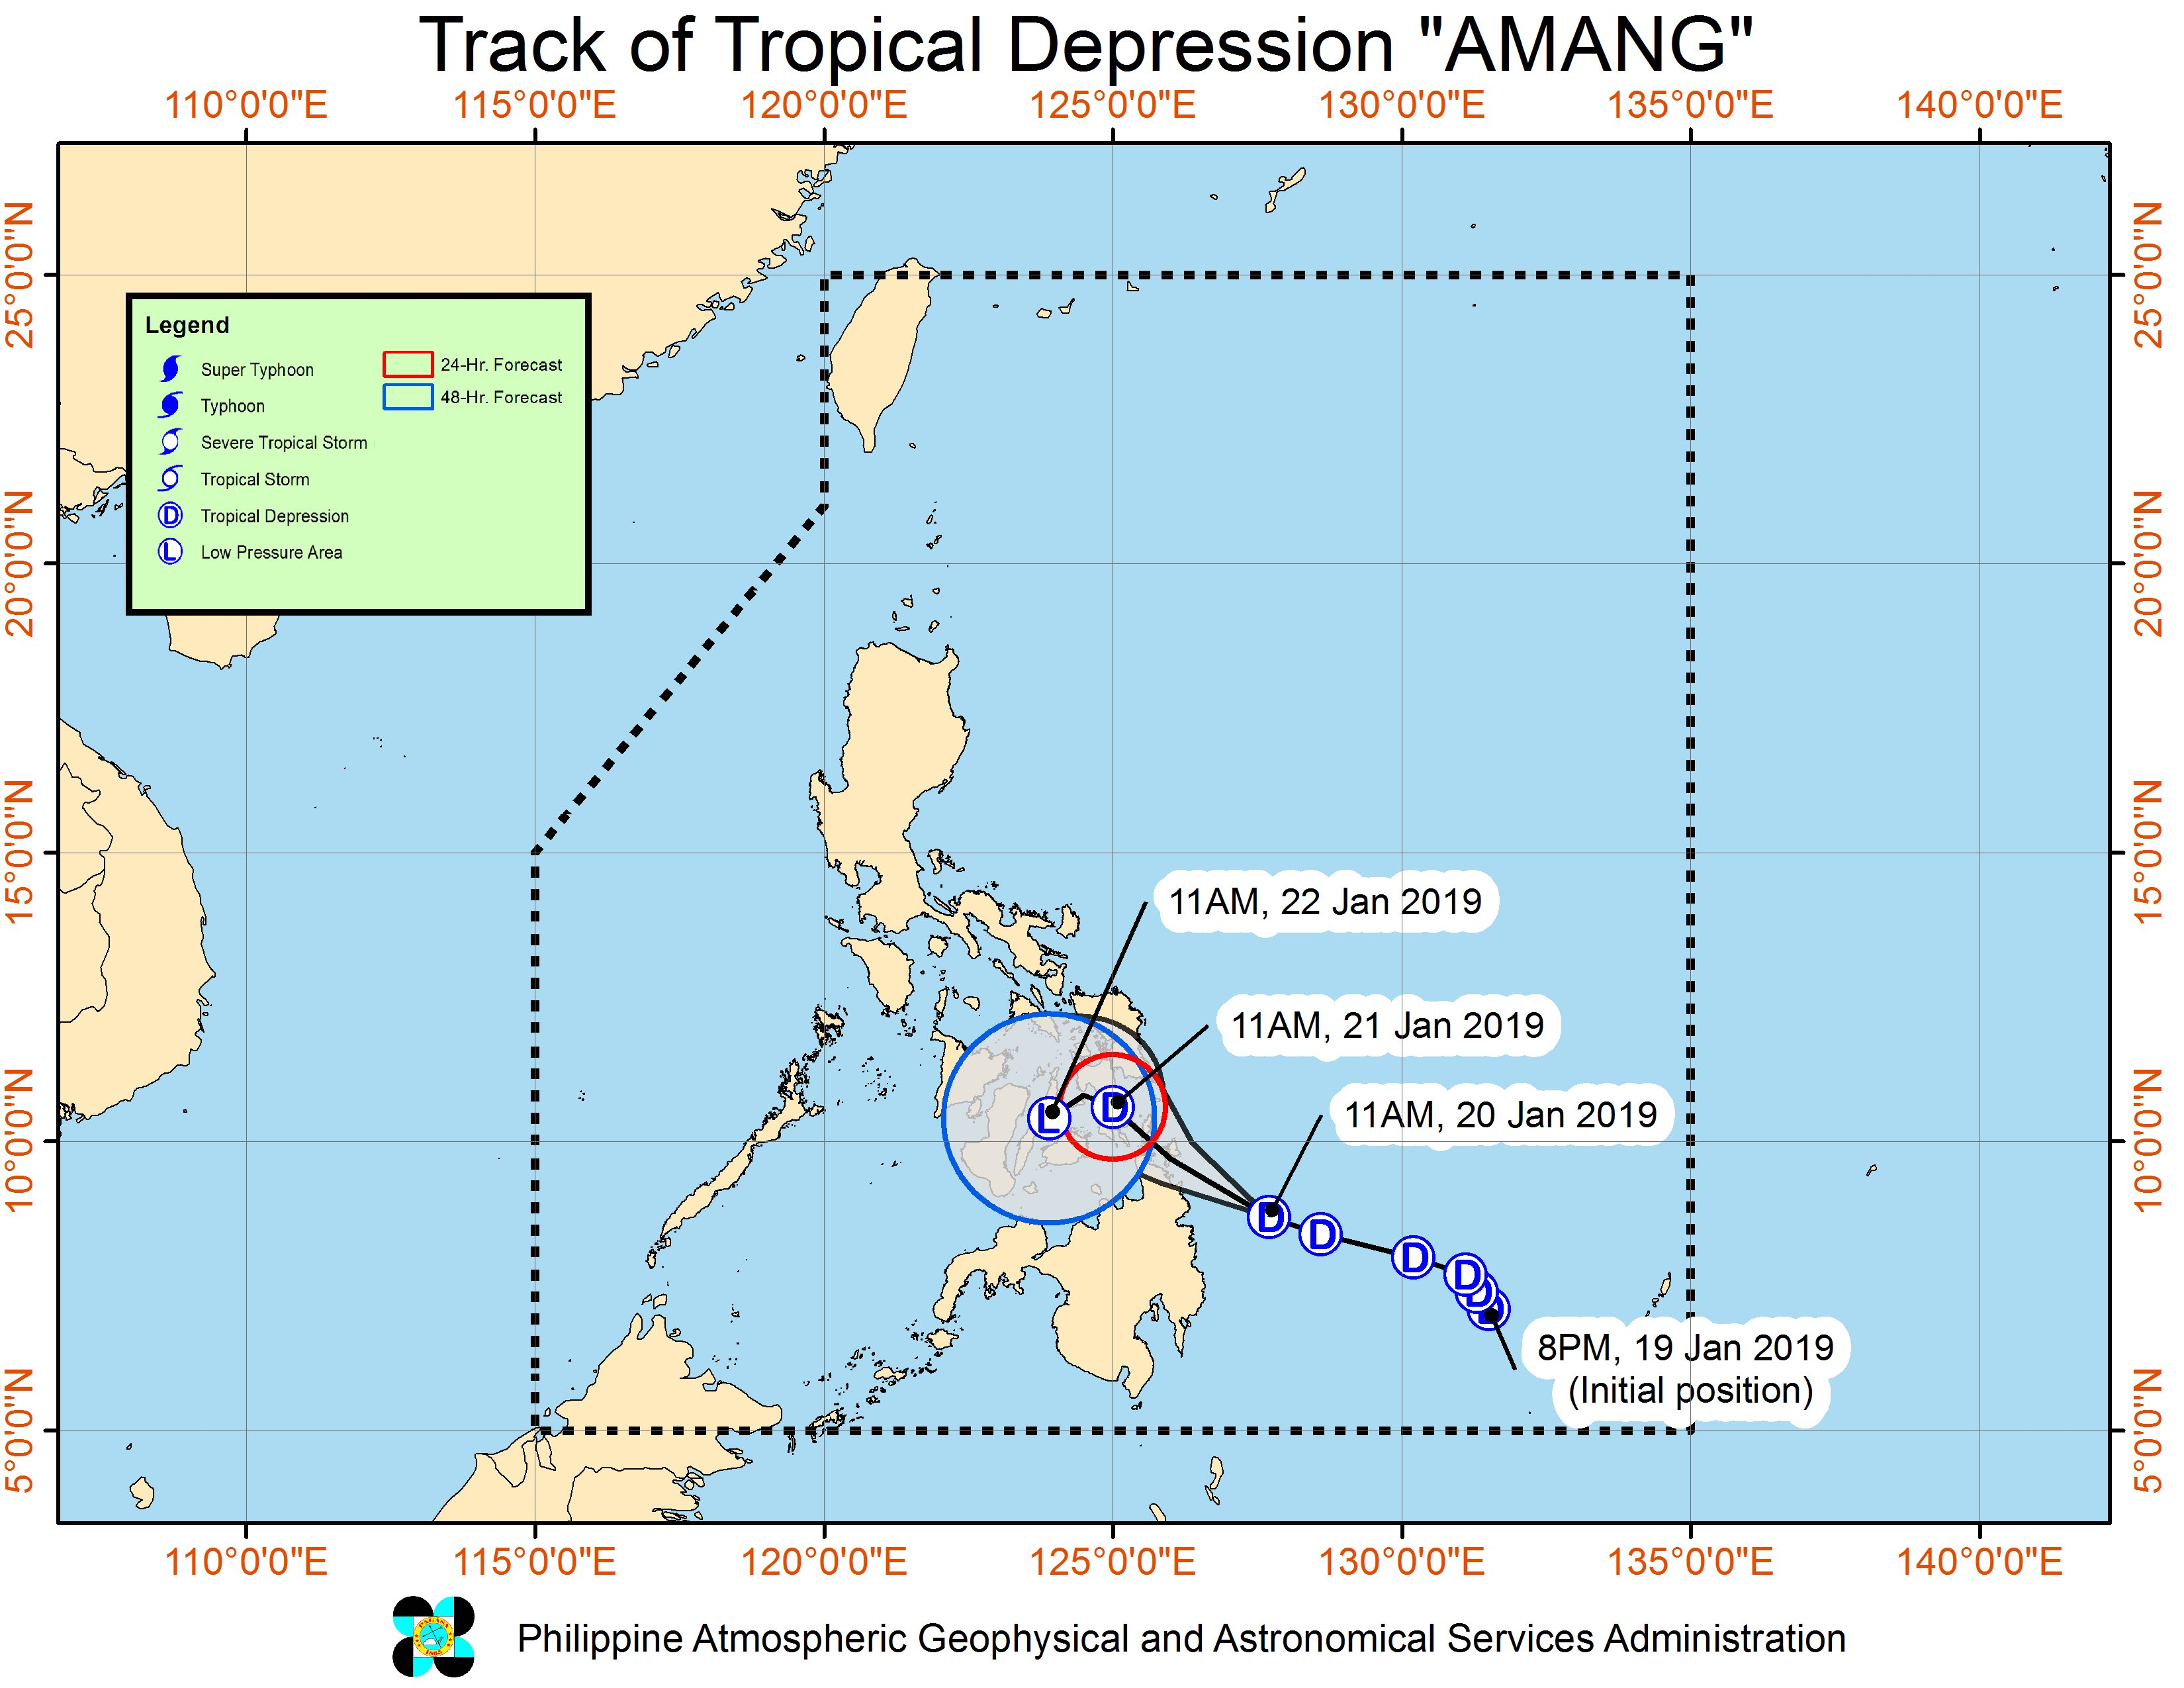 Forecast track of Tropical Depression Amang as of January 20, 2019, 2 pm. Image from PAGASA